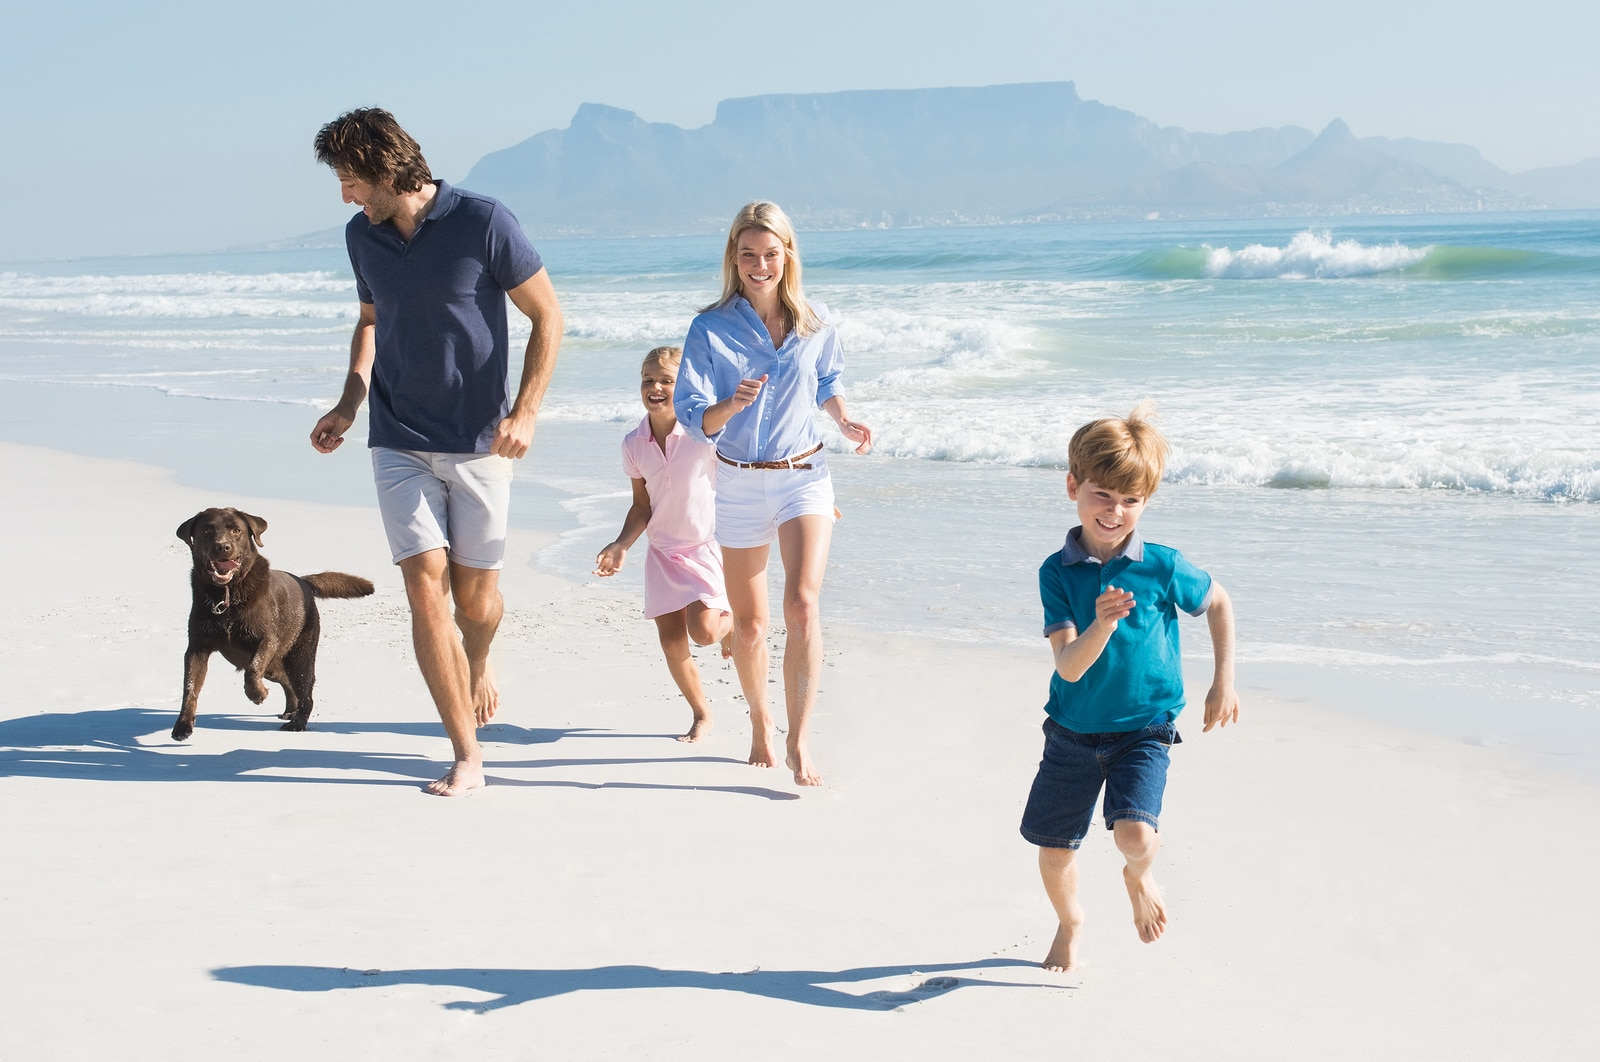 Family with two small children and brown dog running on the beach.